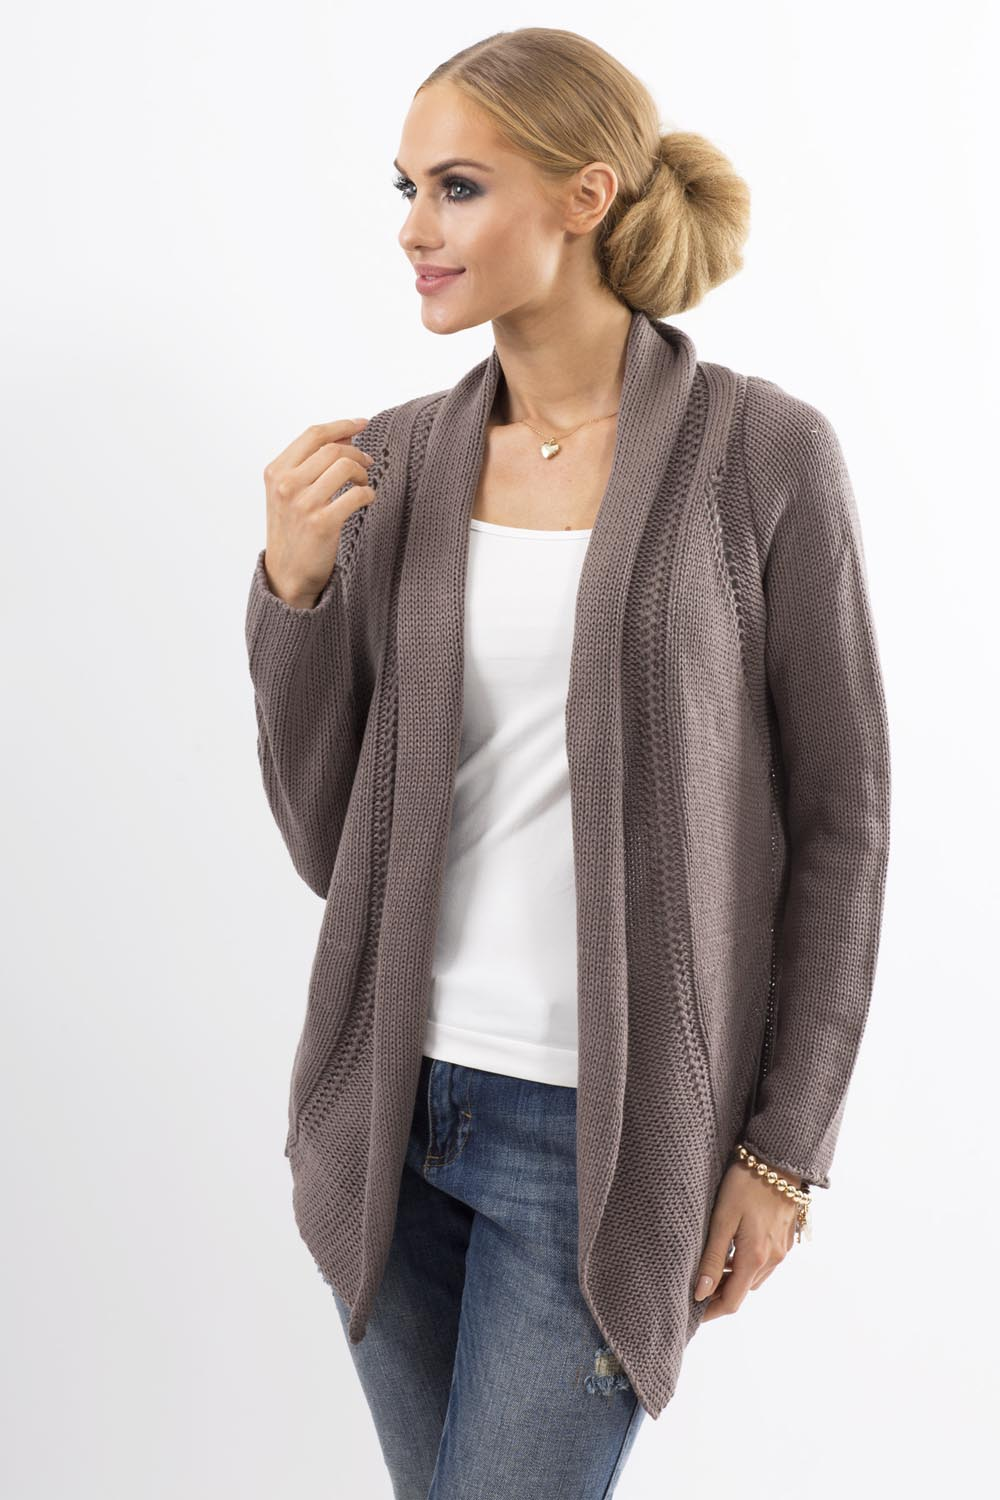 Knitting Pattern Wrap Cardigan : Cappuccino Shawl Collar Ladies Cardigan with Eyelet Knit Pattern